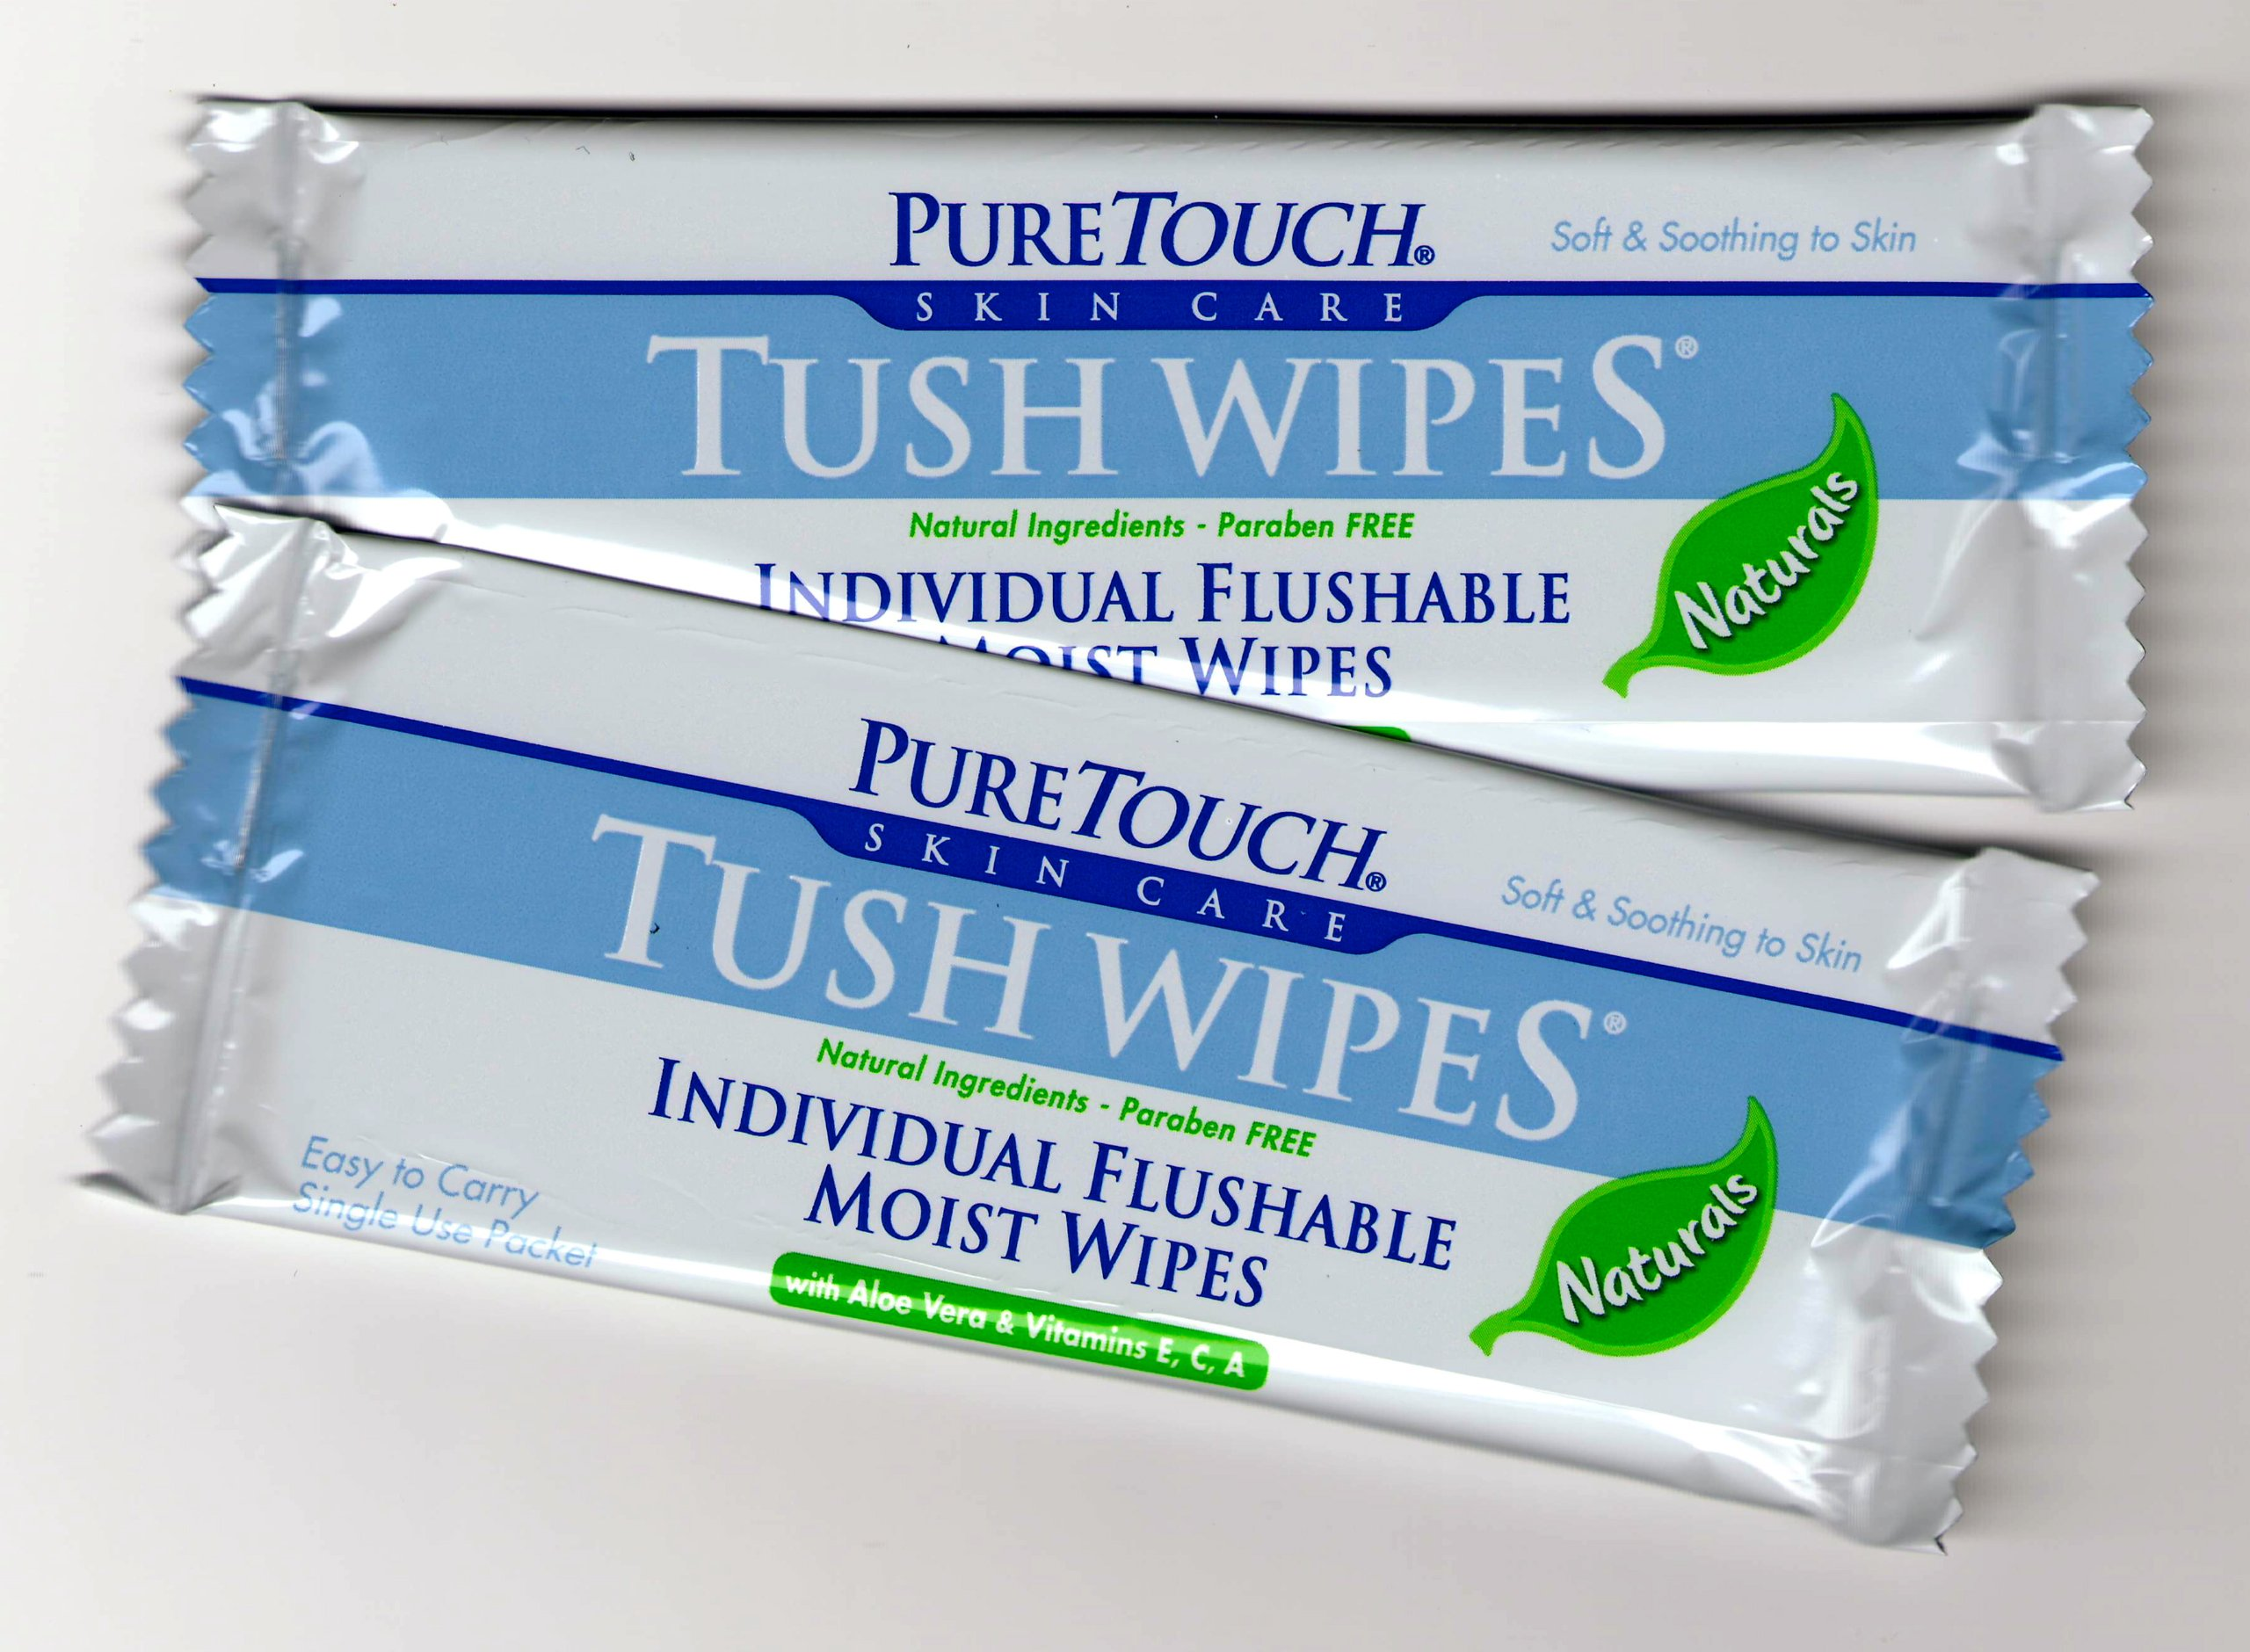 PureTouch Tush Wipes NATURALS for adults Individual Flushable Moist Wipes Bulk of 350 Single-Use-Packets